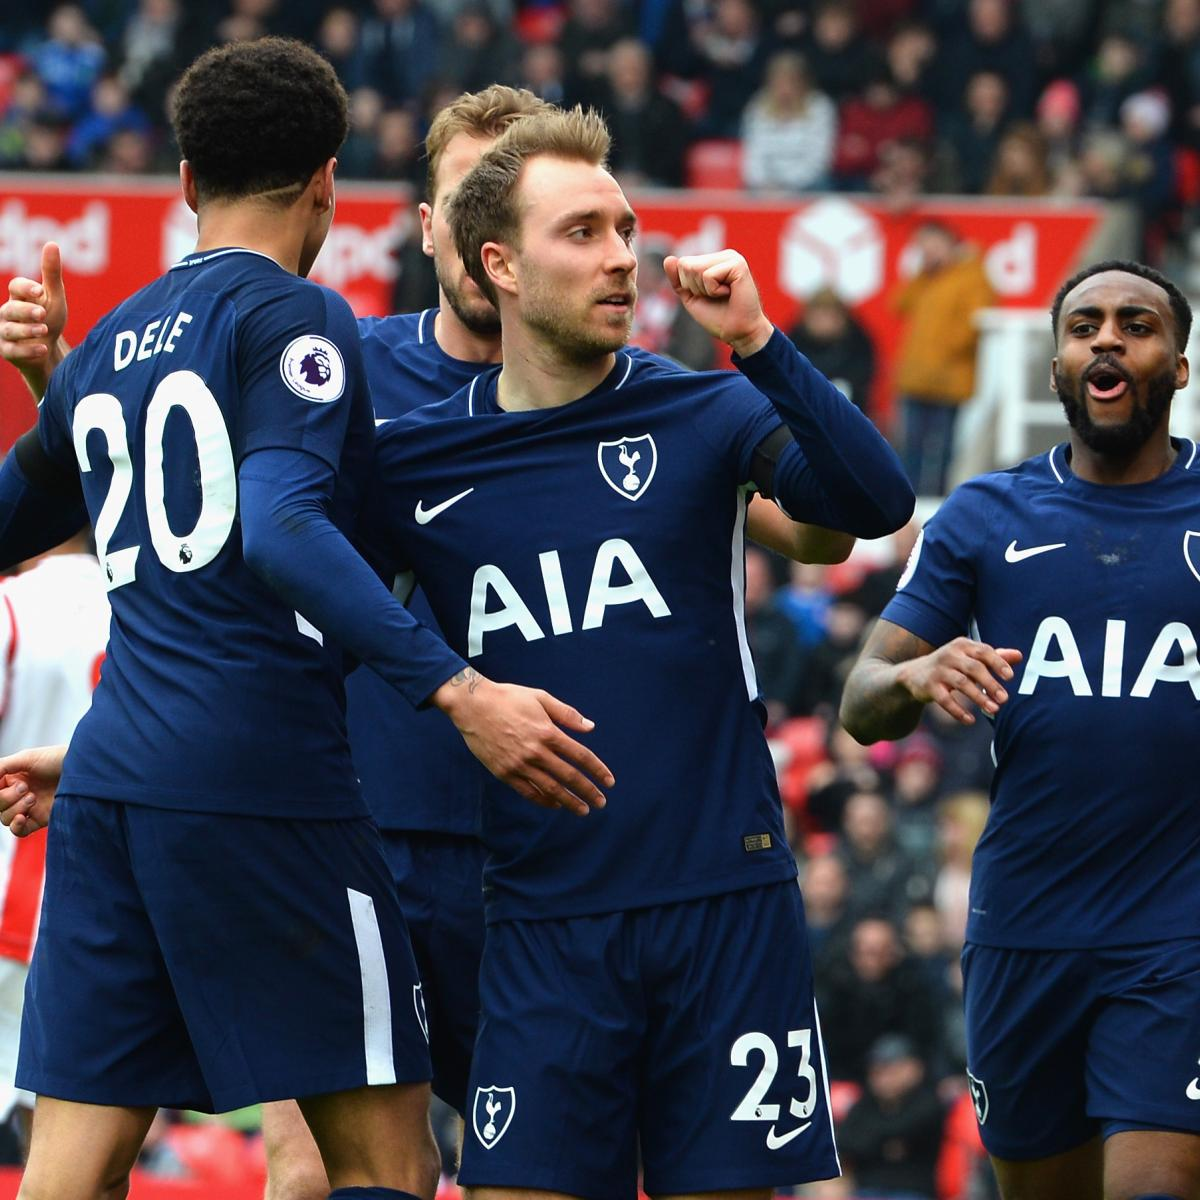 EPL Predictions: Picks, Top Players for Week 34 Premier League Fixtures